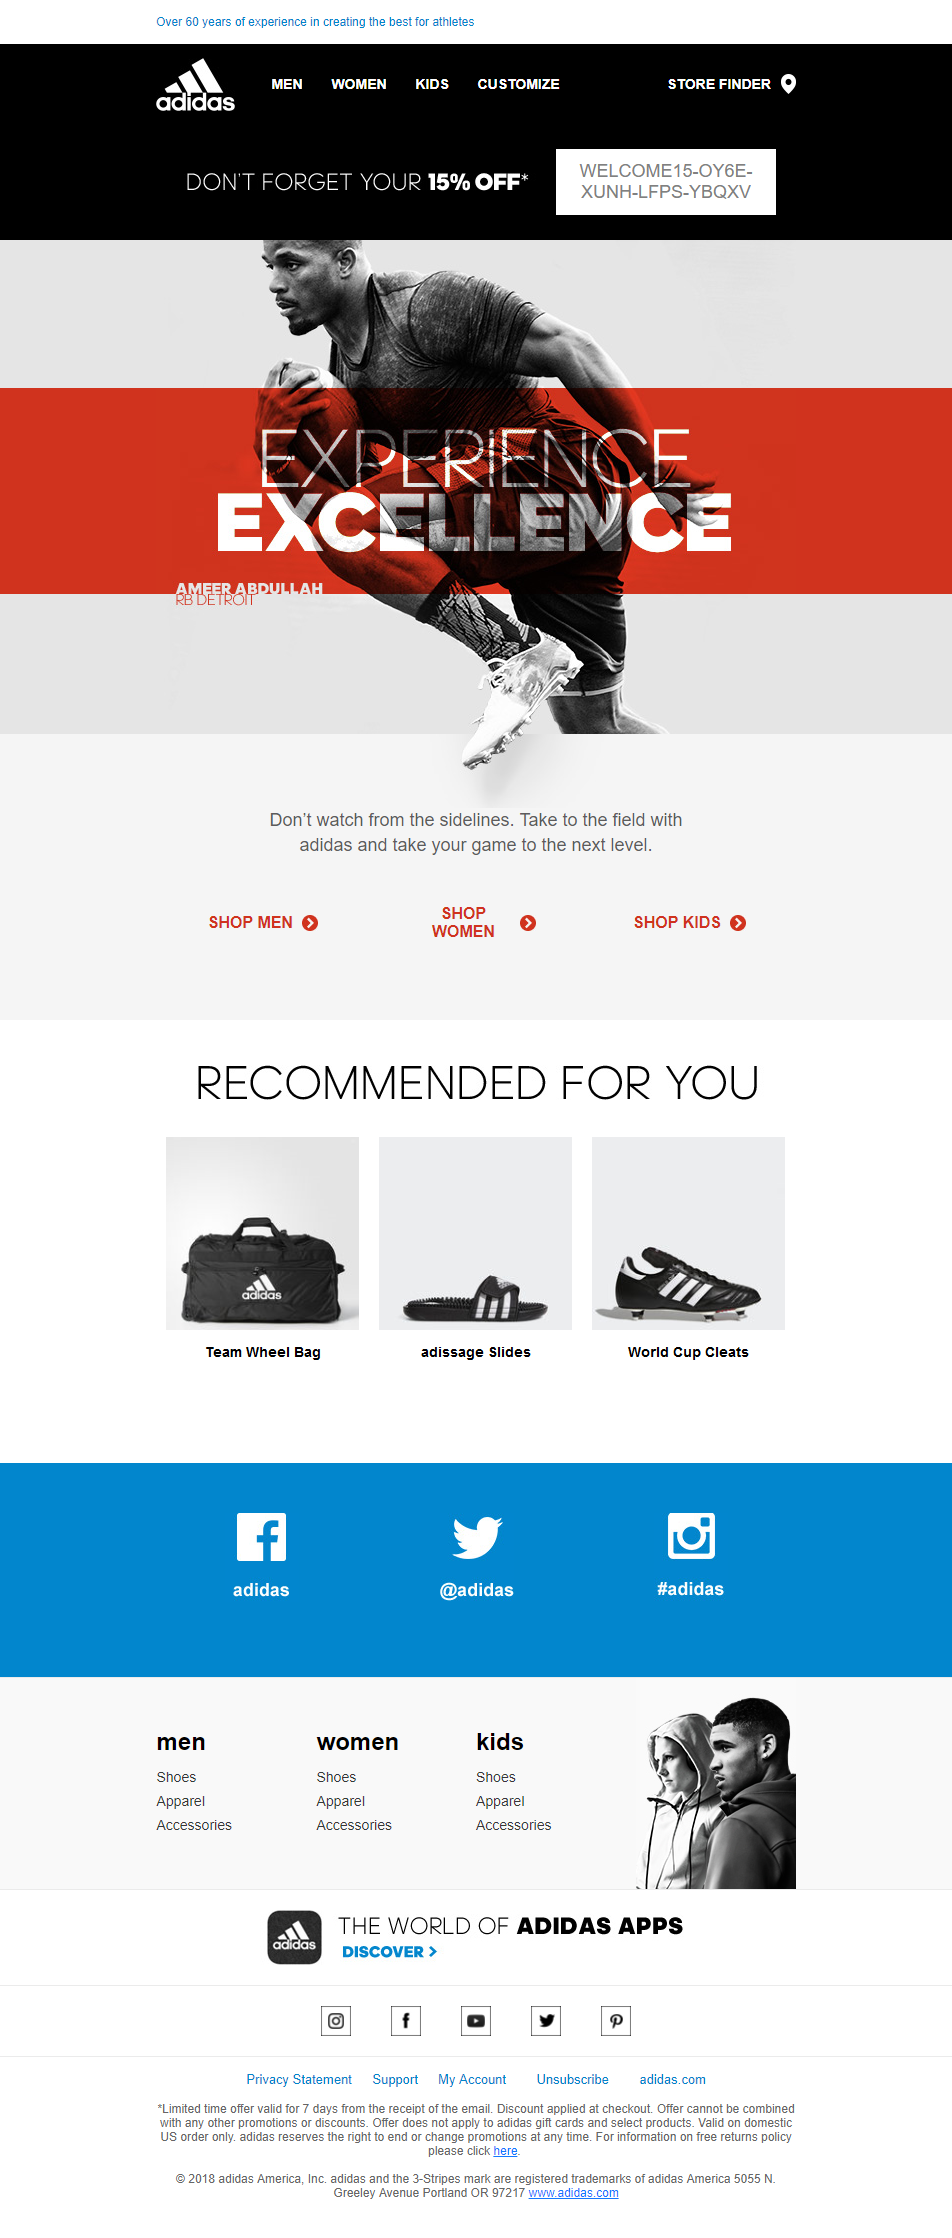 Adidas Email Design Don T Watch From The Sidelines Take To The Field With Adidas And Take Your Game To The Next Le Email Design Email Layout Web Layout Design